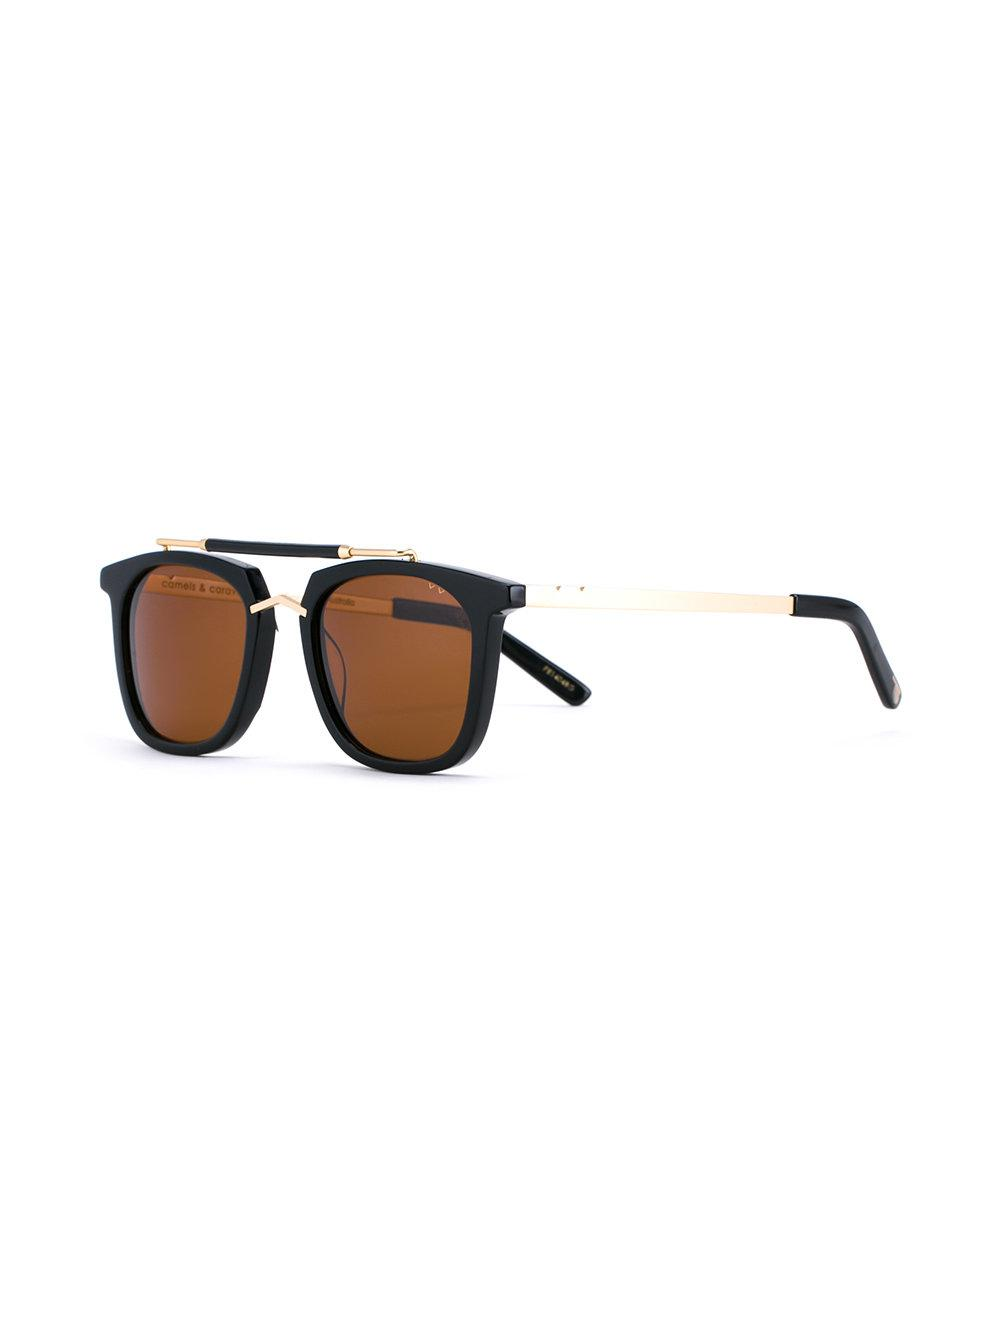 ff1ad16100 Pared Eyewear - Black Camels   Caravans Sunglasses - Lyst. View fullscreen